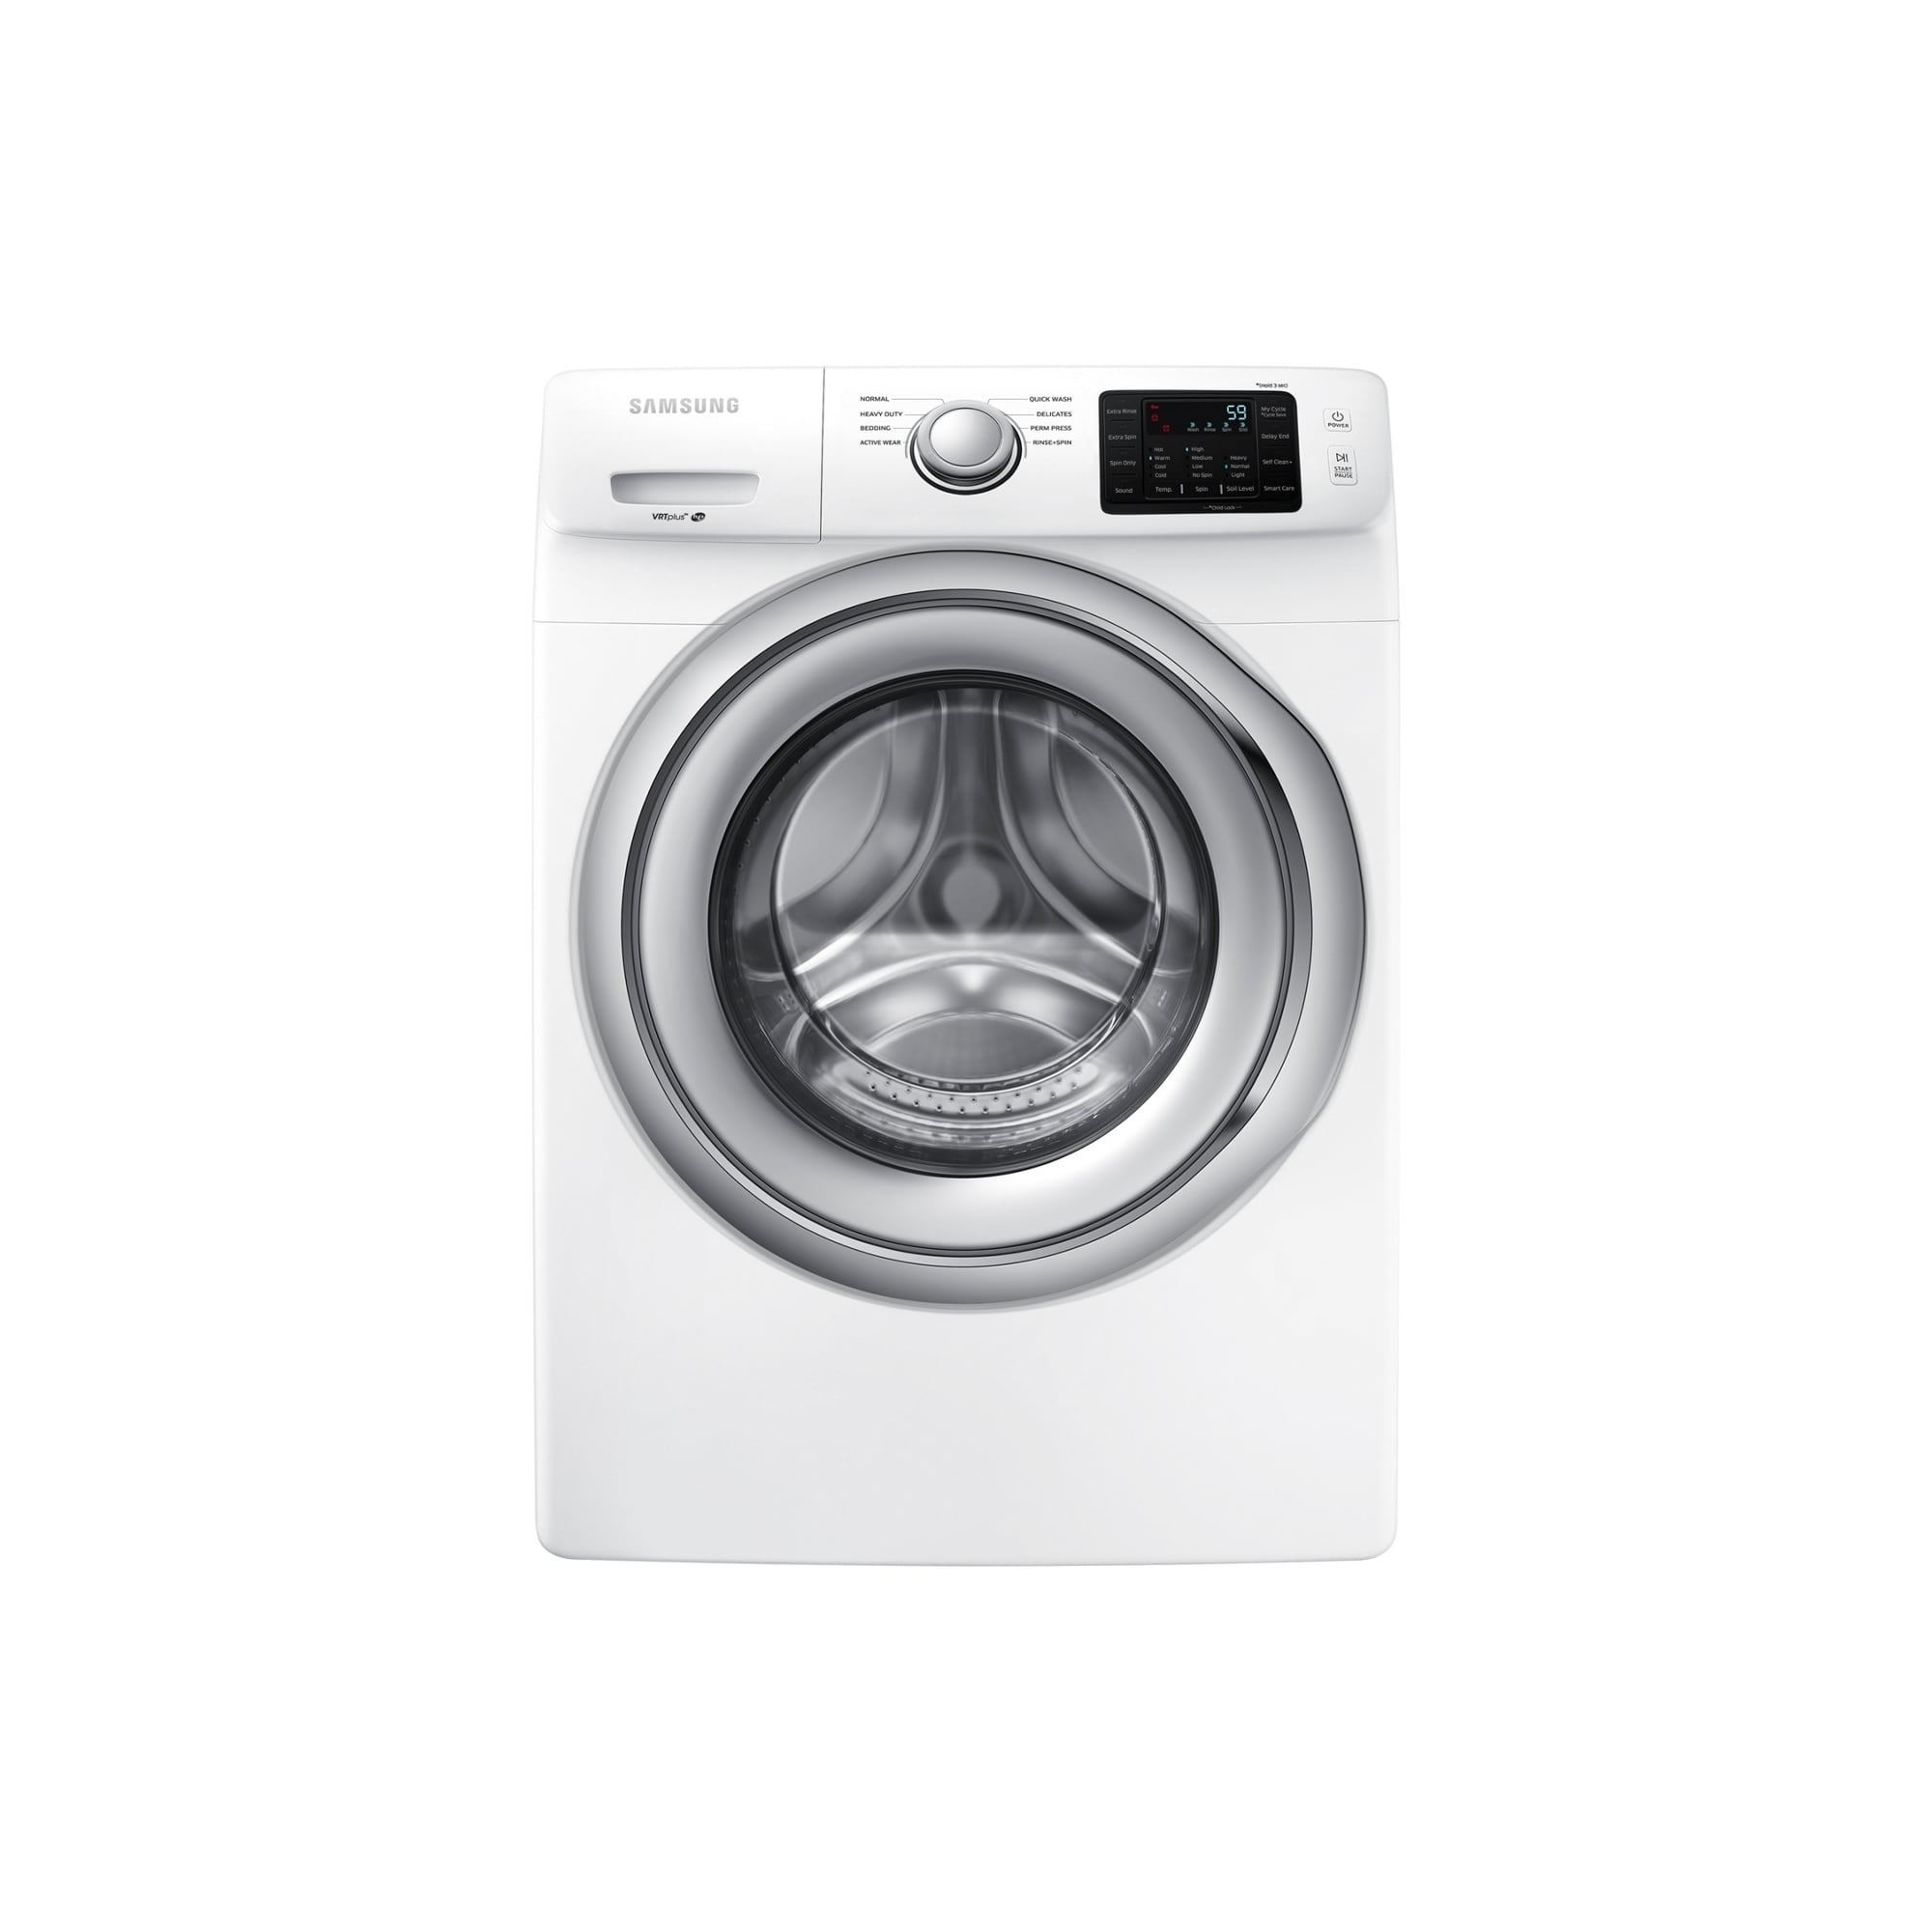 Samsung WF5300 4.5 cu. cf. Front Load Washer